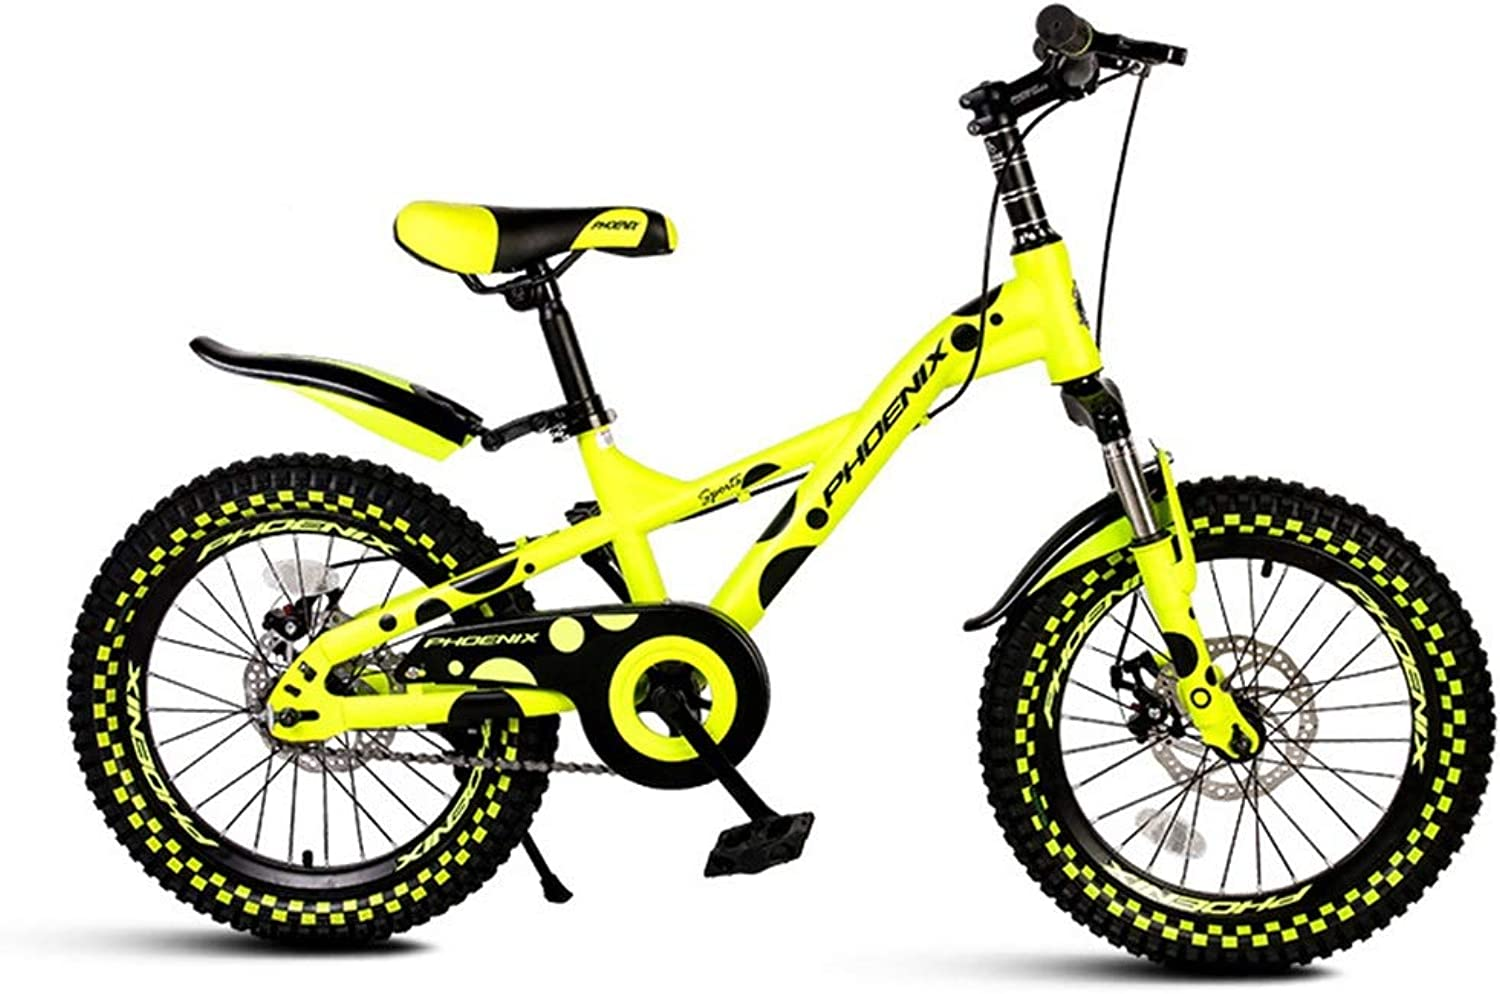 Kids' Bikes Bicycle Single Speed Mountain Bike Shock Absorber boy Girl Bicycle Stroller Student Bicycle, 18 inch (color   Yellow, Size   18inches)